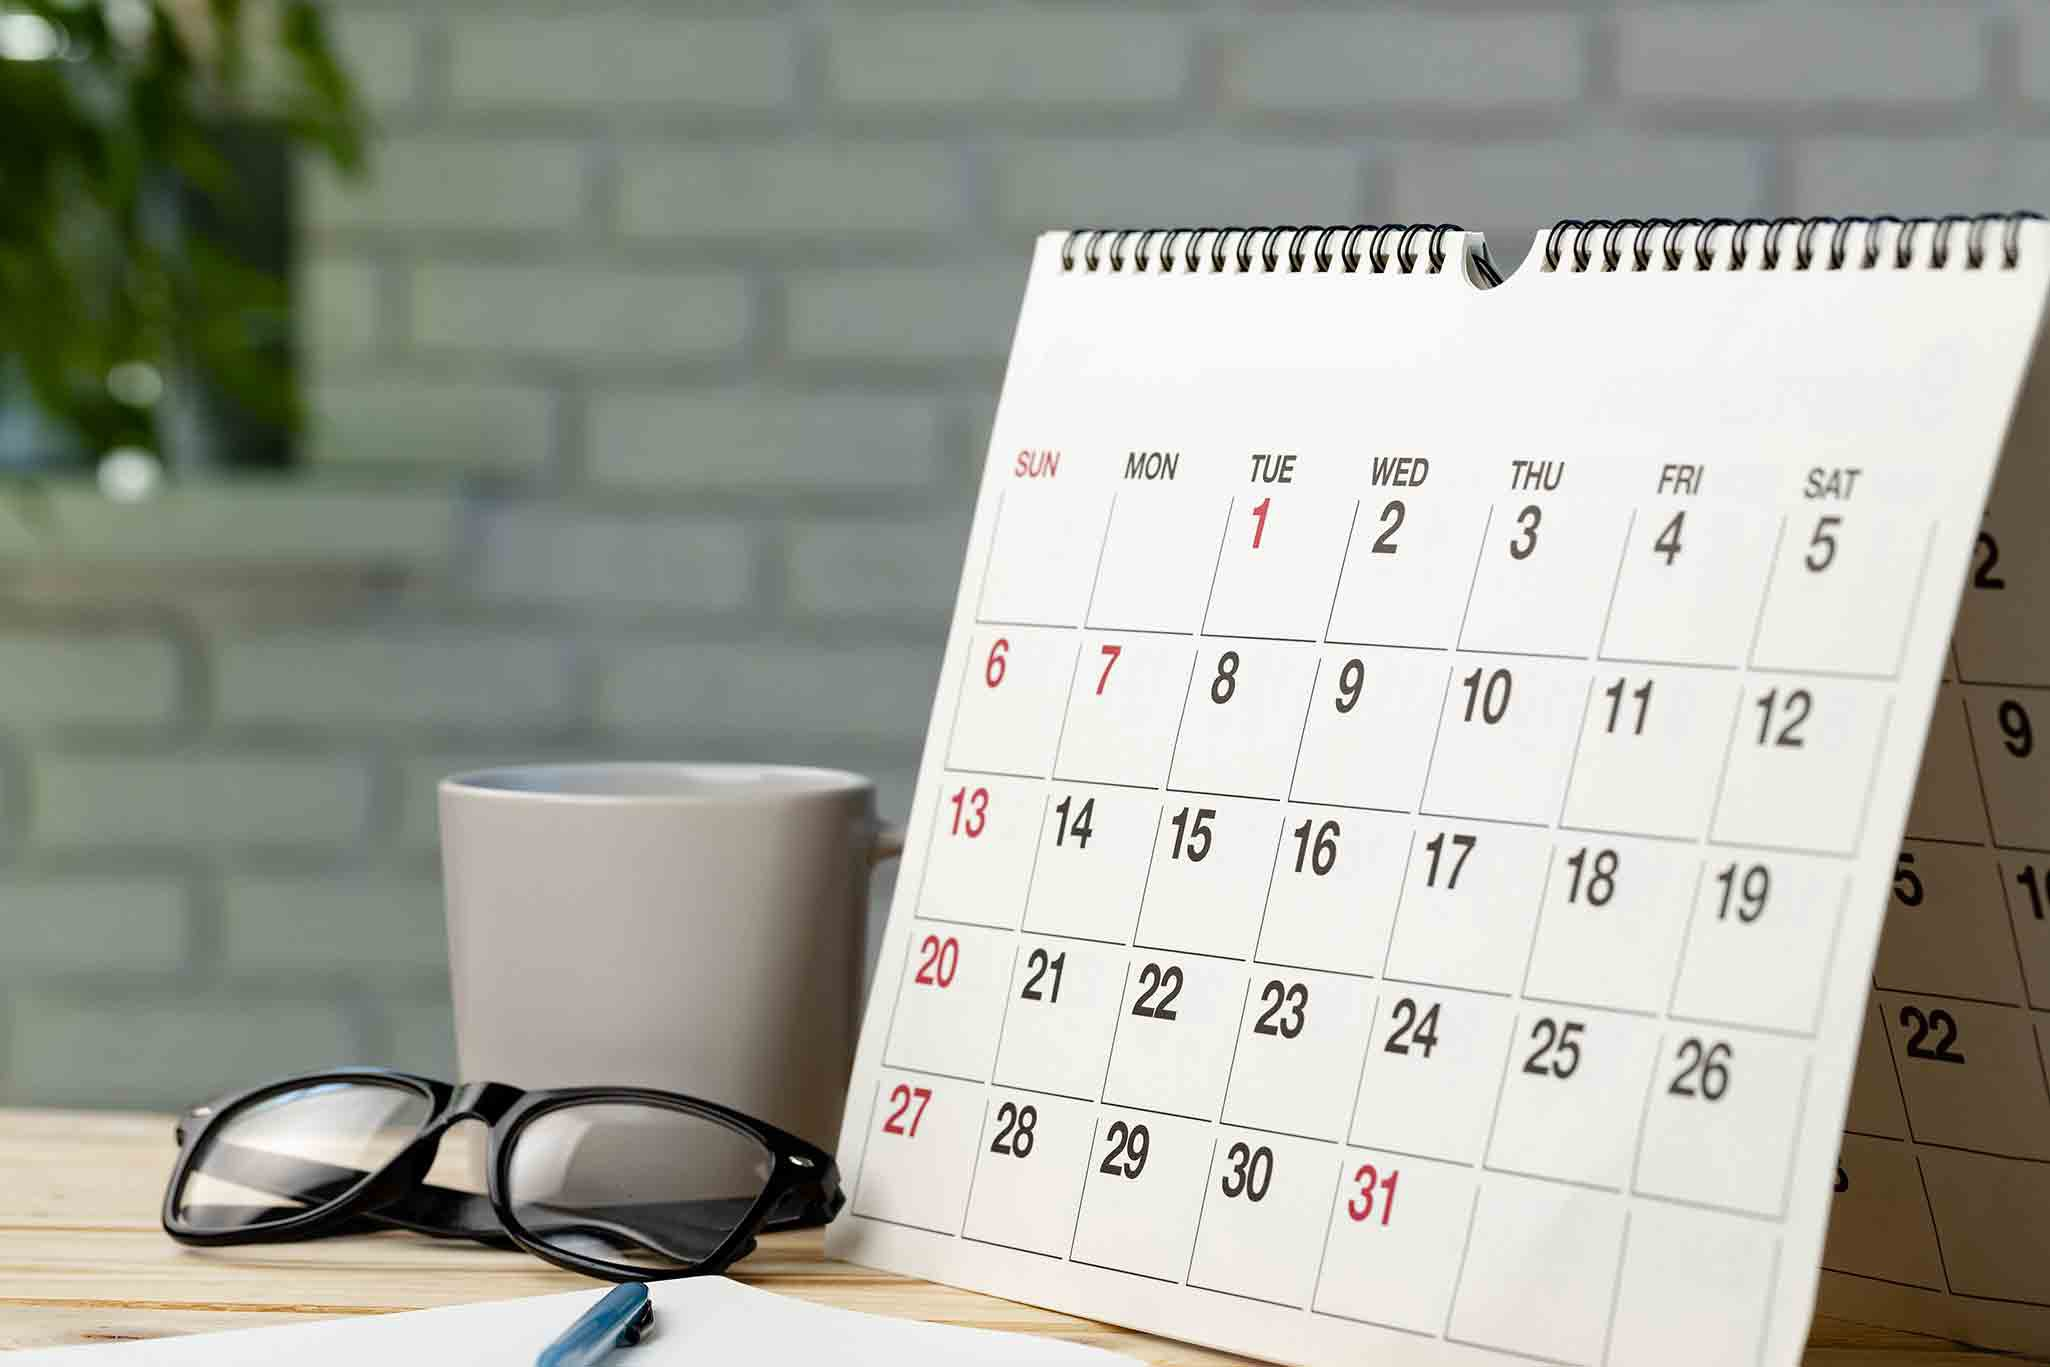 Unmarked calendar propped up on a desk, next to pen, paper, glasses and coffee mug.